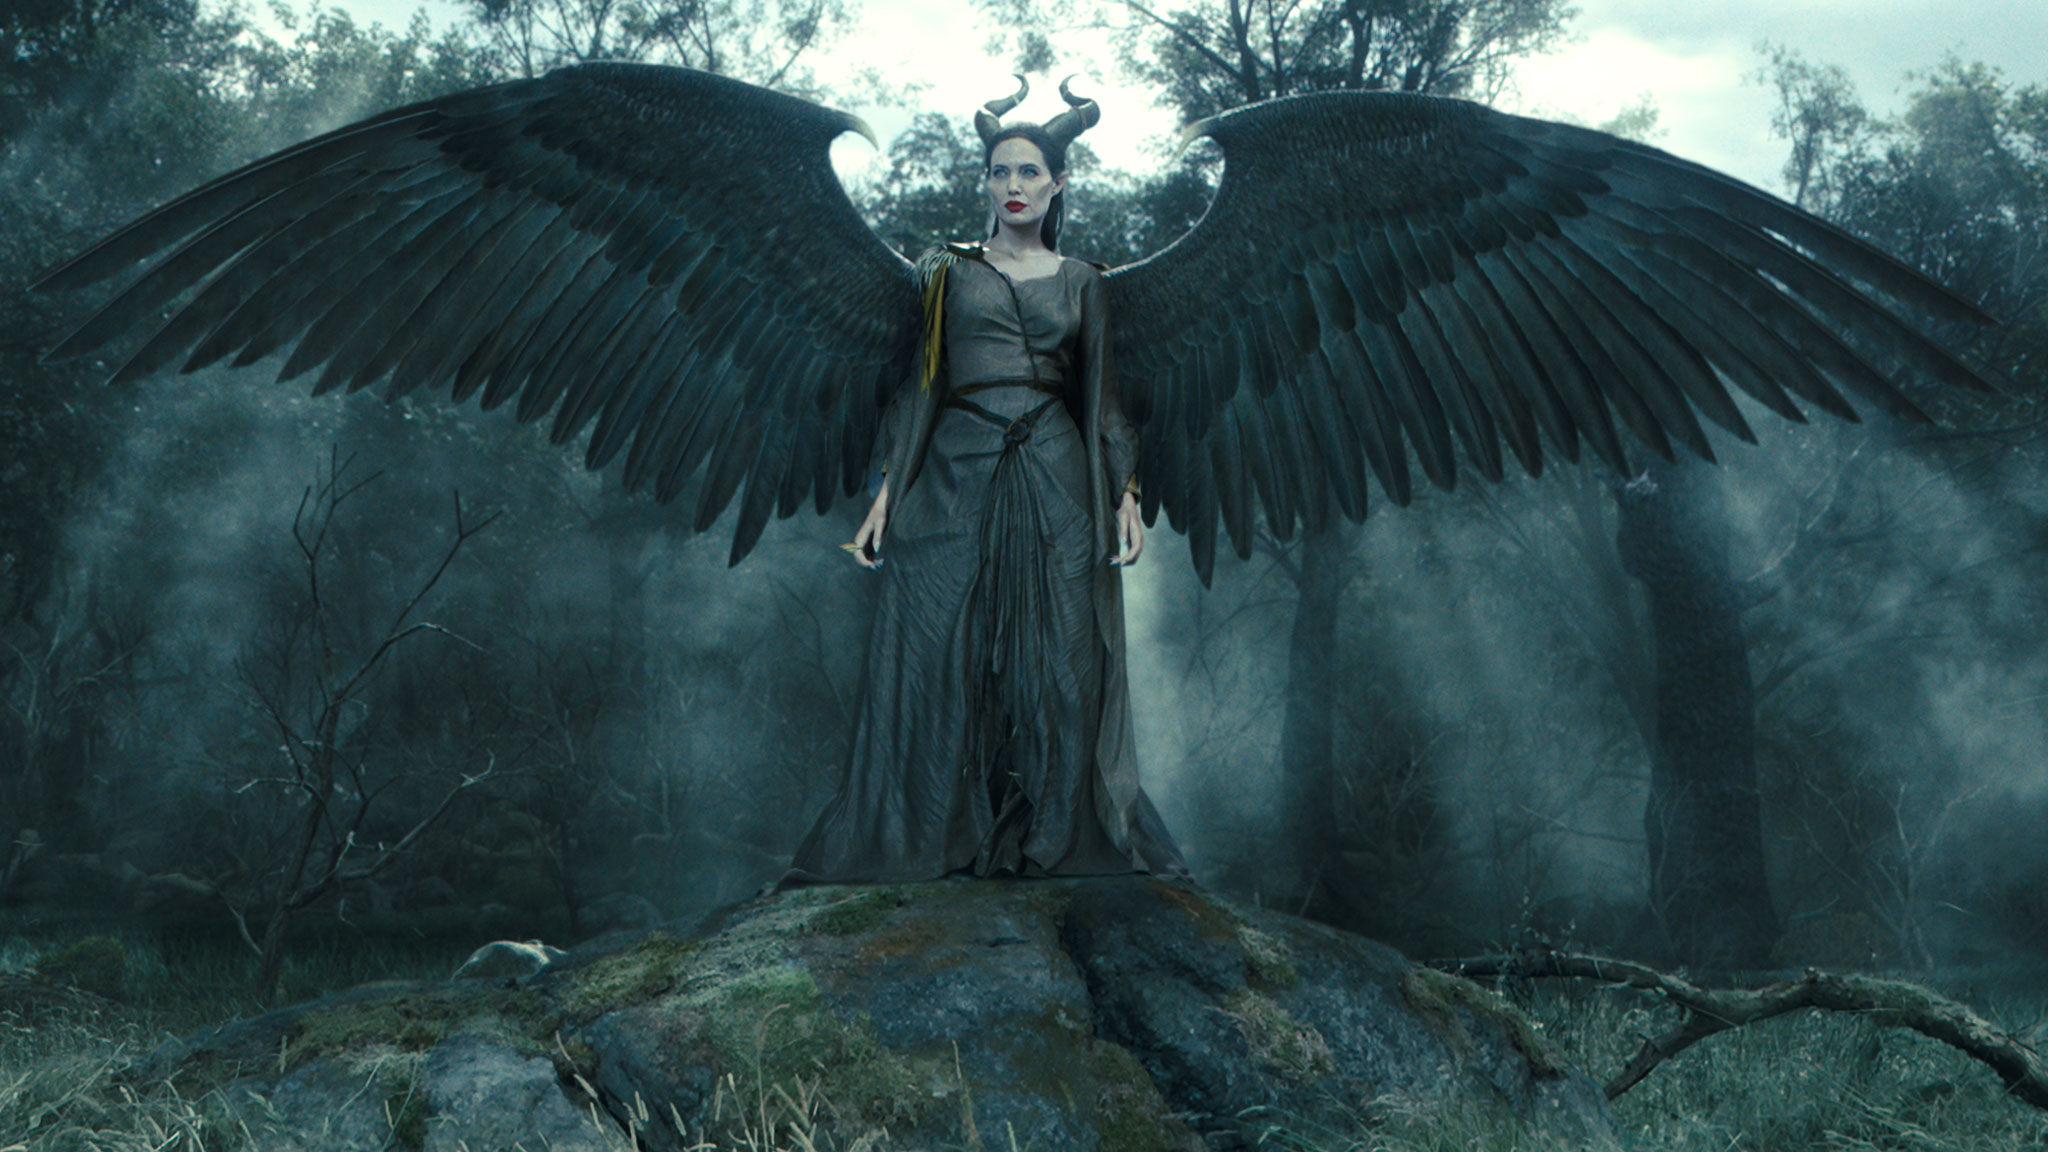 8601f540-dac3-11e3-9f86-9725a48e981b_maleficent_featurette_gs